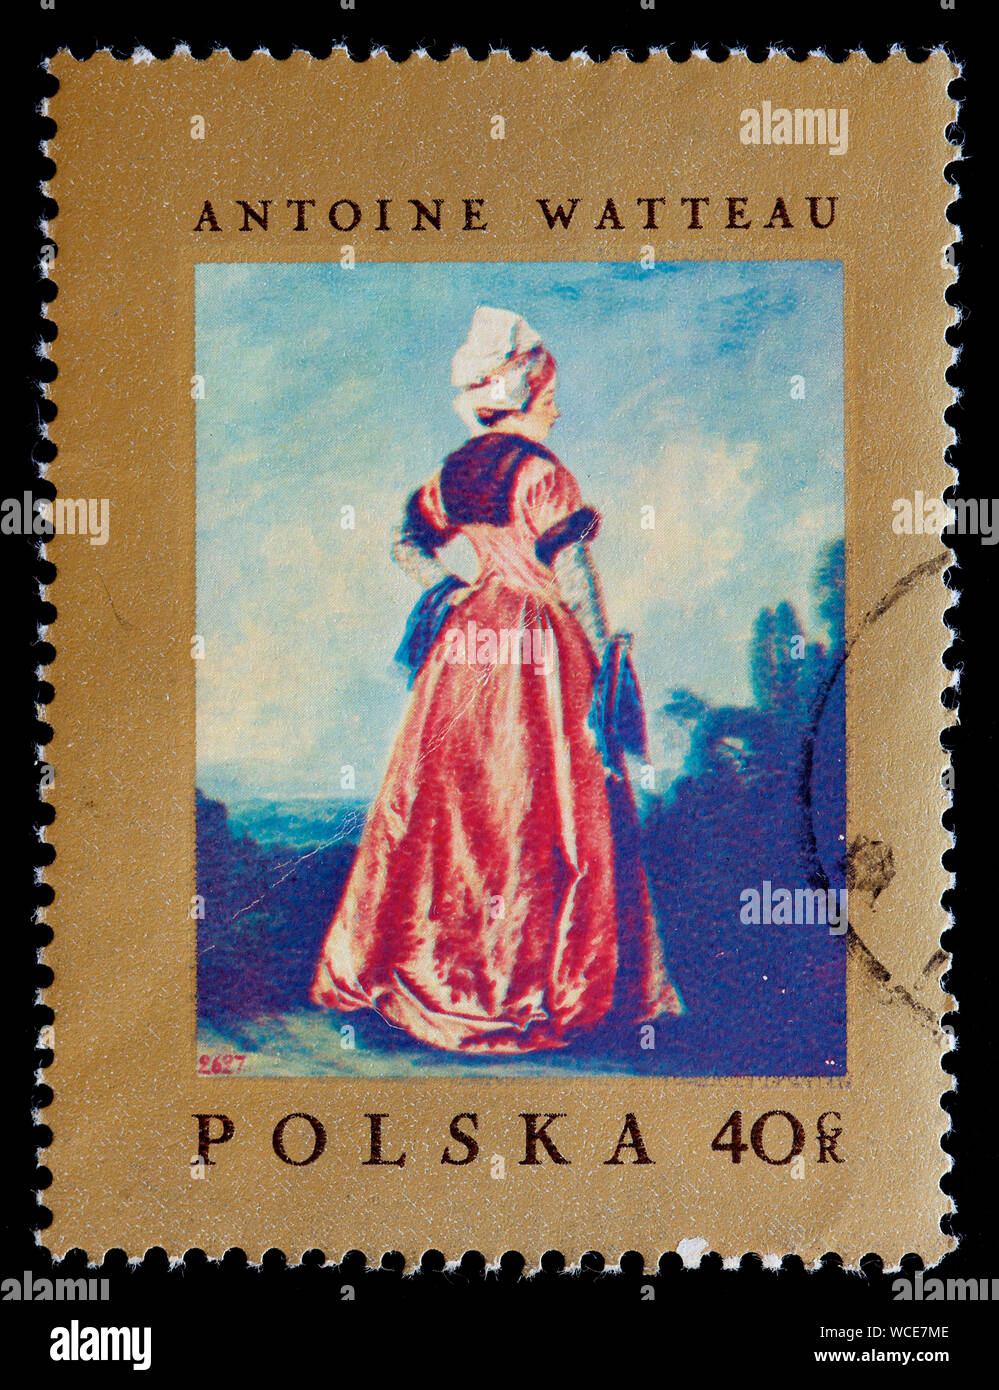 Poland Postage Stamp Polish Woman By Antoine Watteau